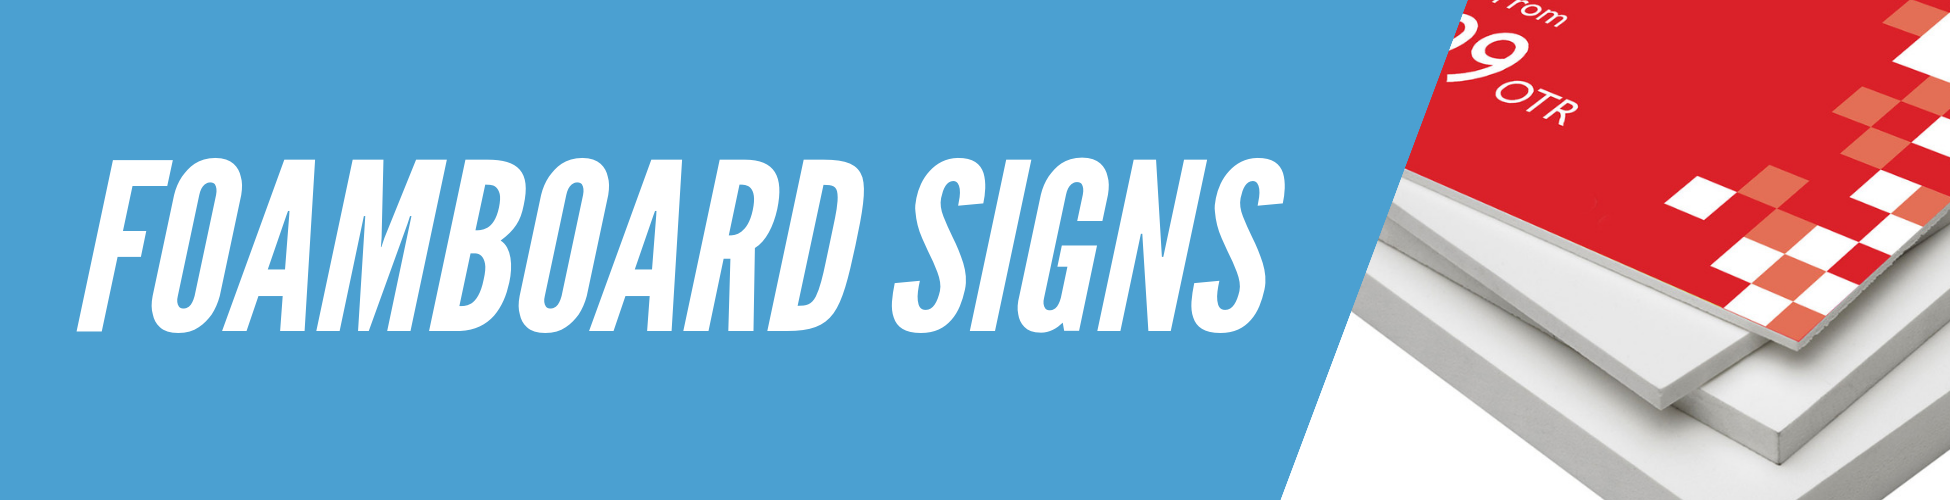 foamboard-signs-banner-v3.png